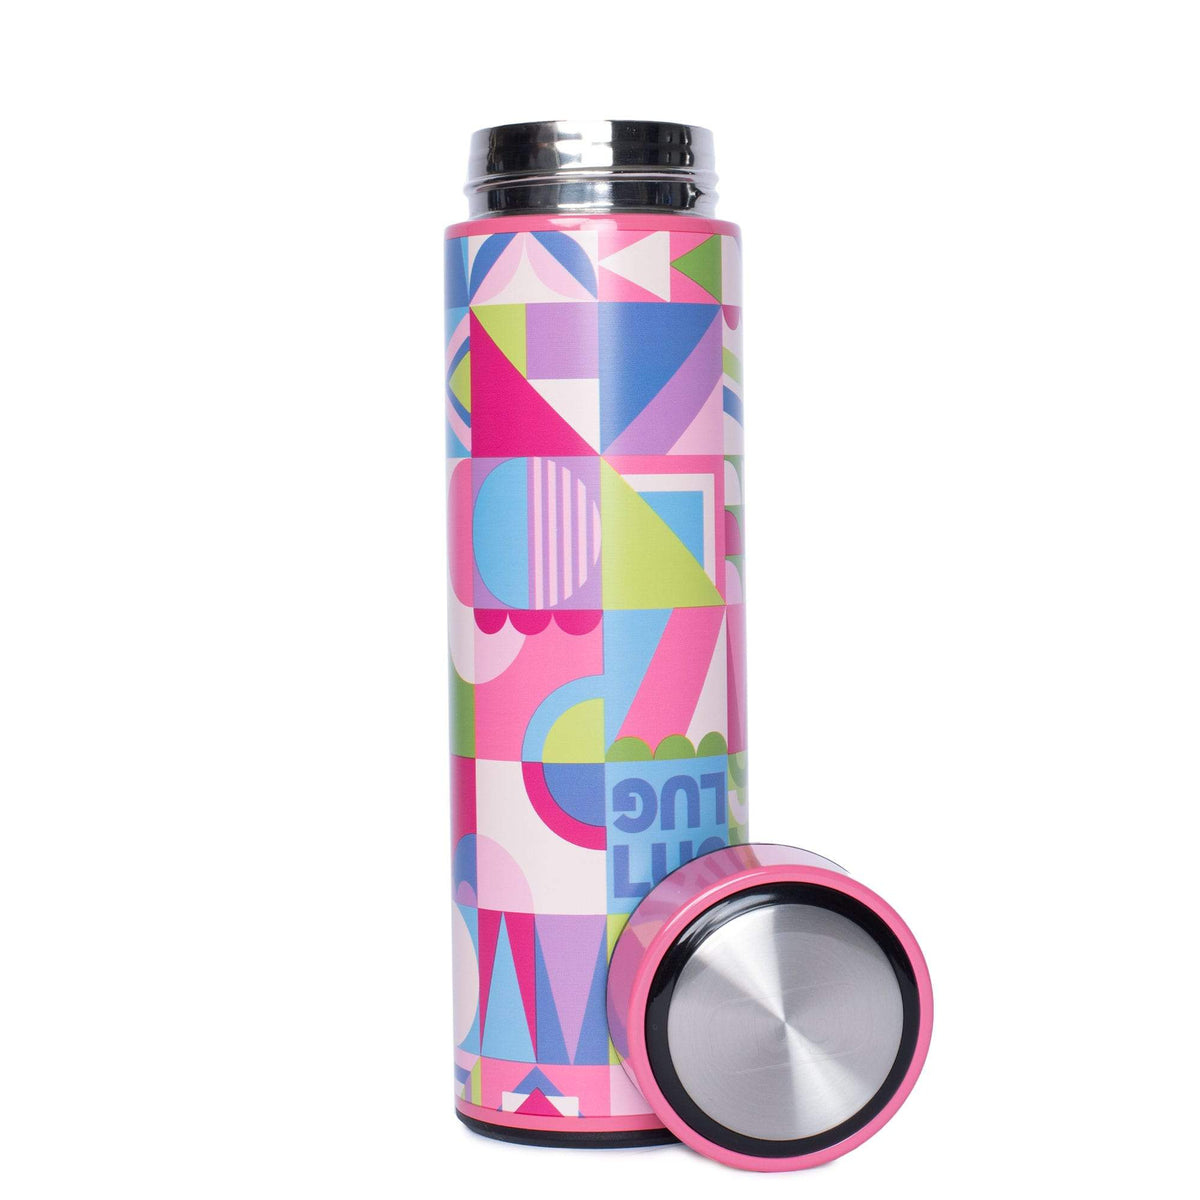 Chuggie Insulated Bottle - 16oz